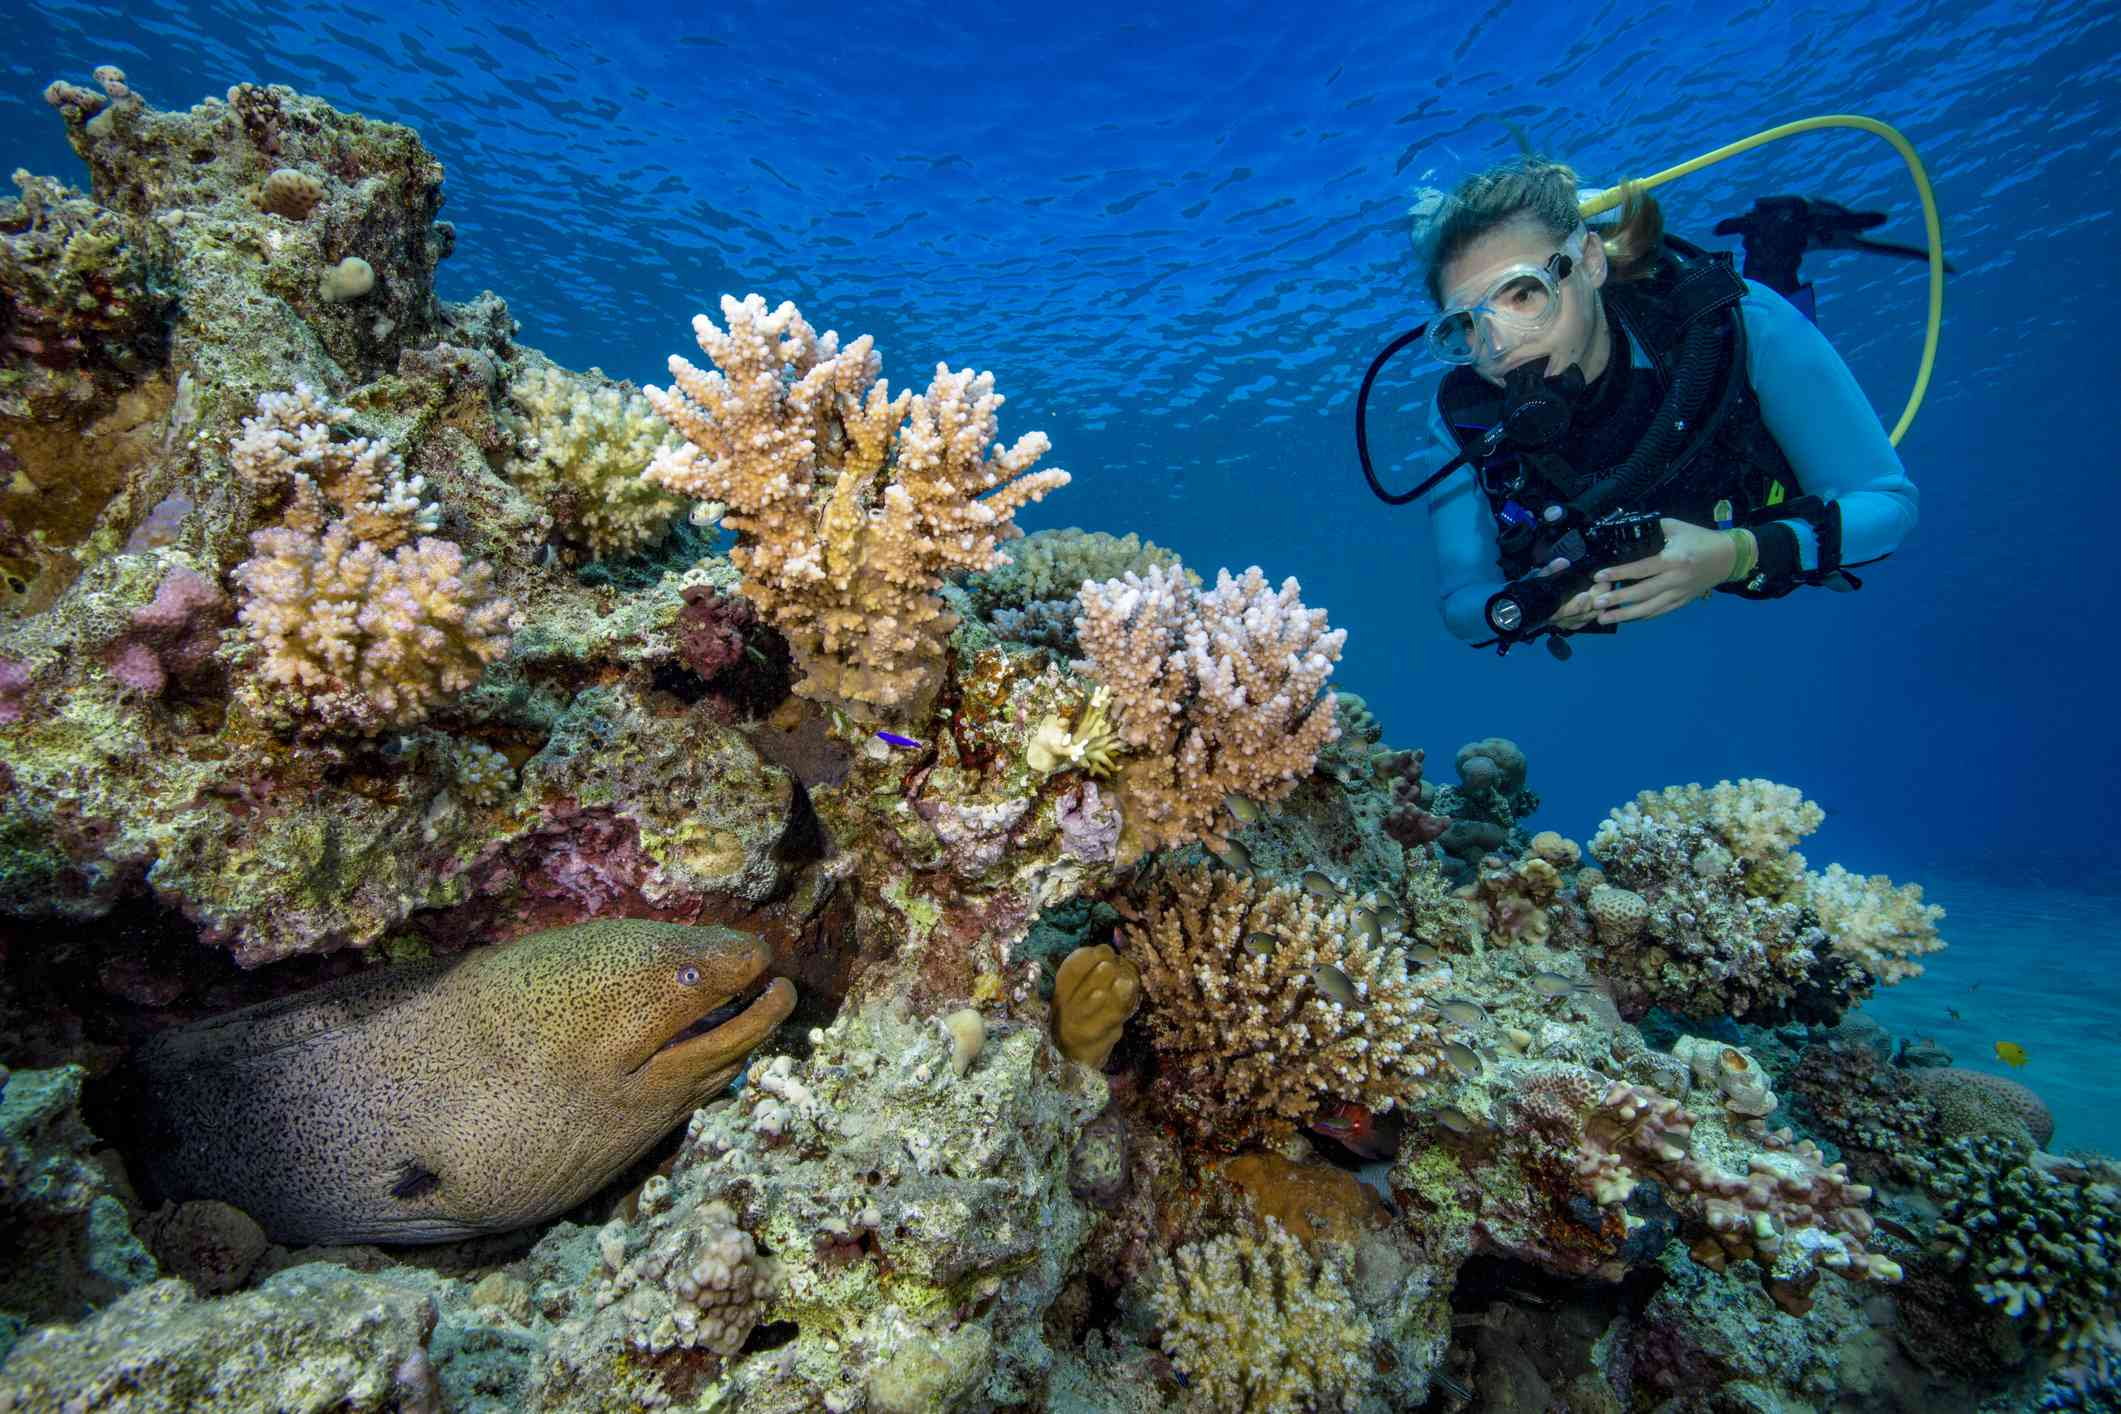 Egypt, Red Sea, Hurghada, scuba diver and yellow-edged moray